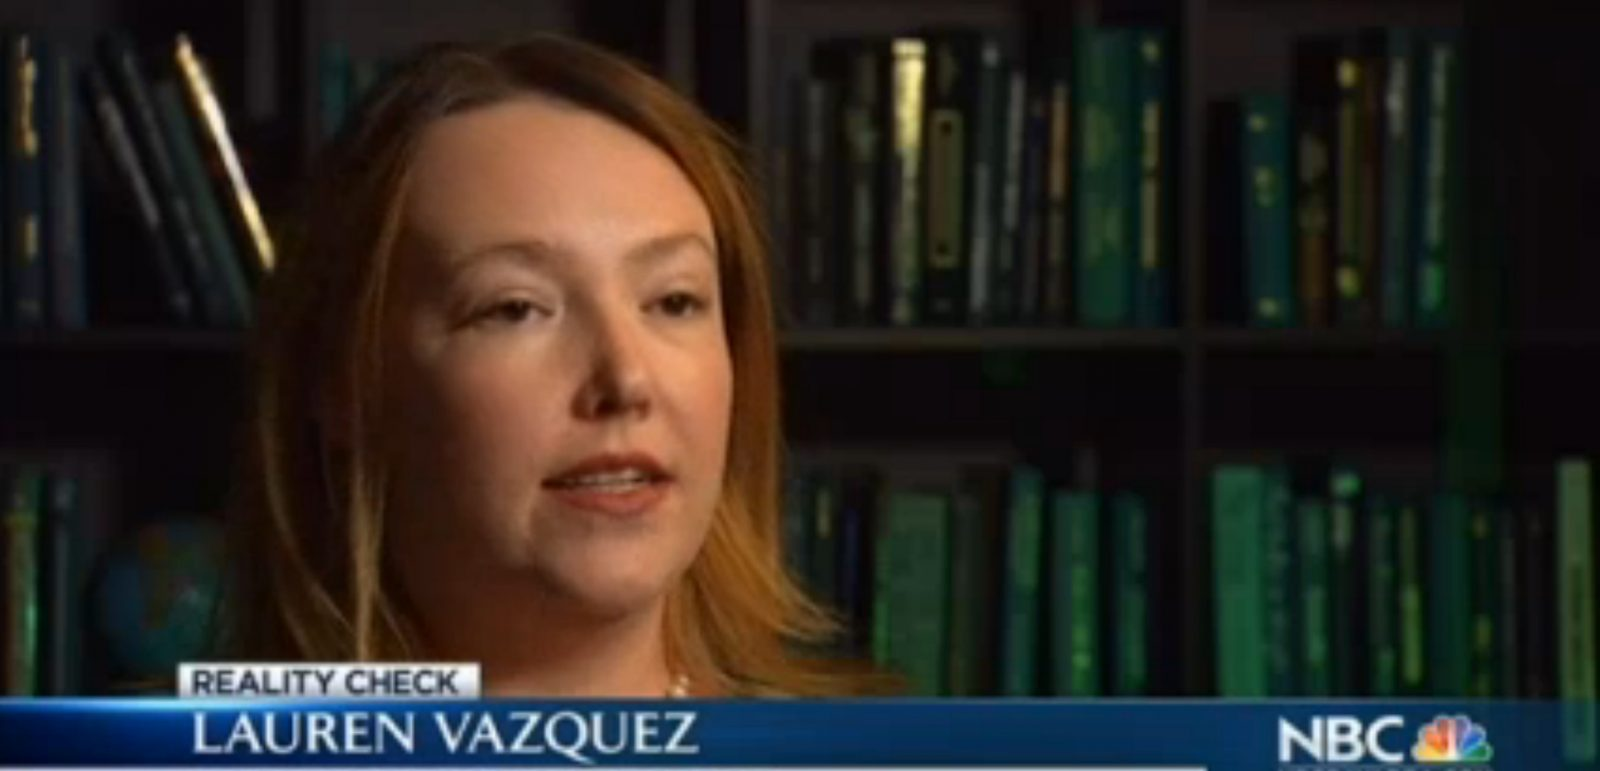 Lauren Vazquez Marijuana Business Lawyer NBC Interview